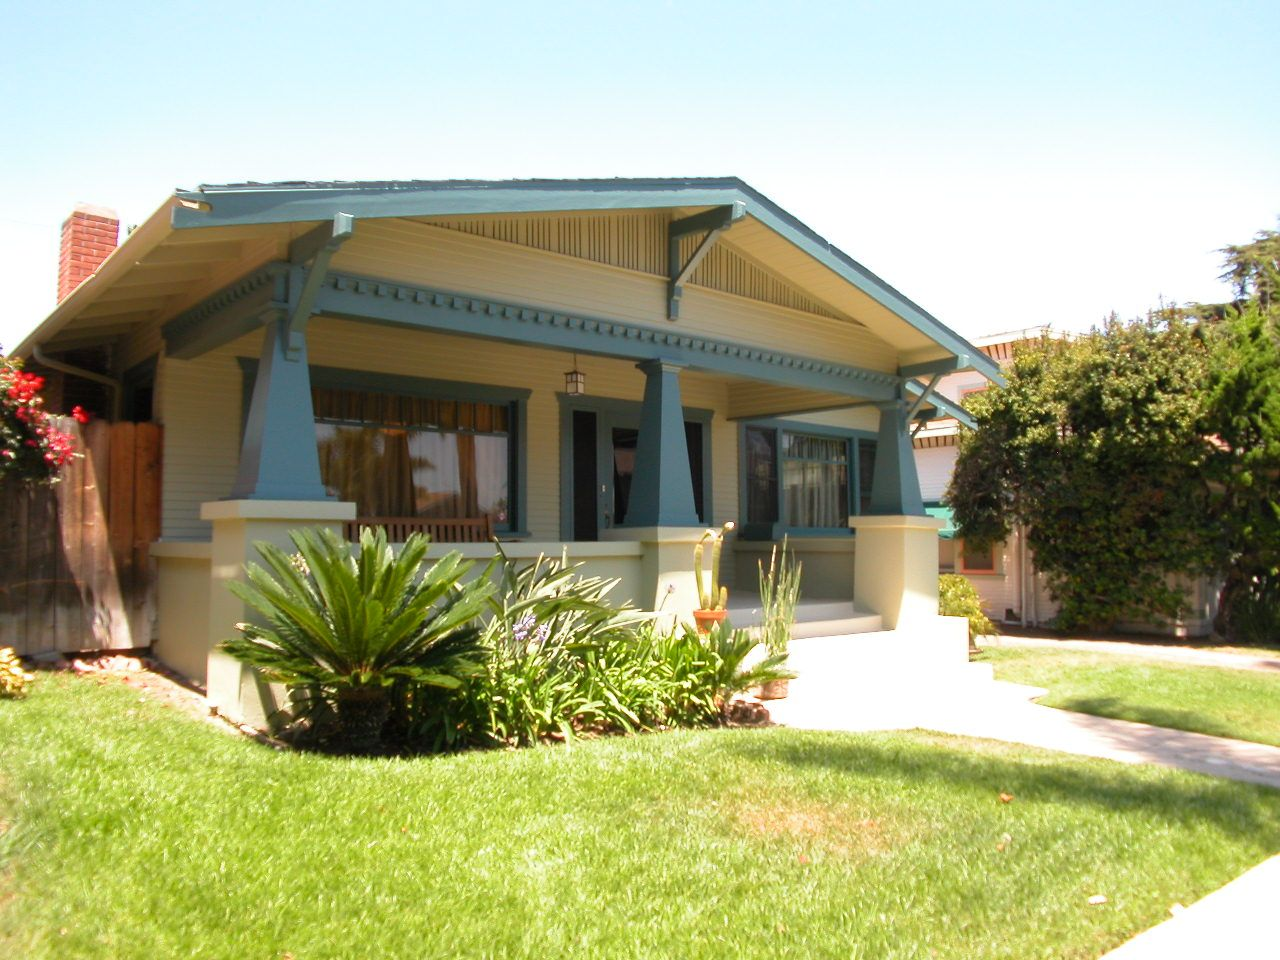 bungalow style homes Bungalow American Bungalow California